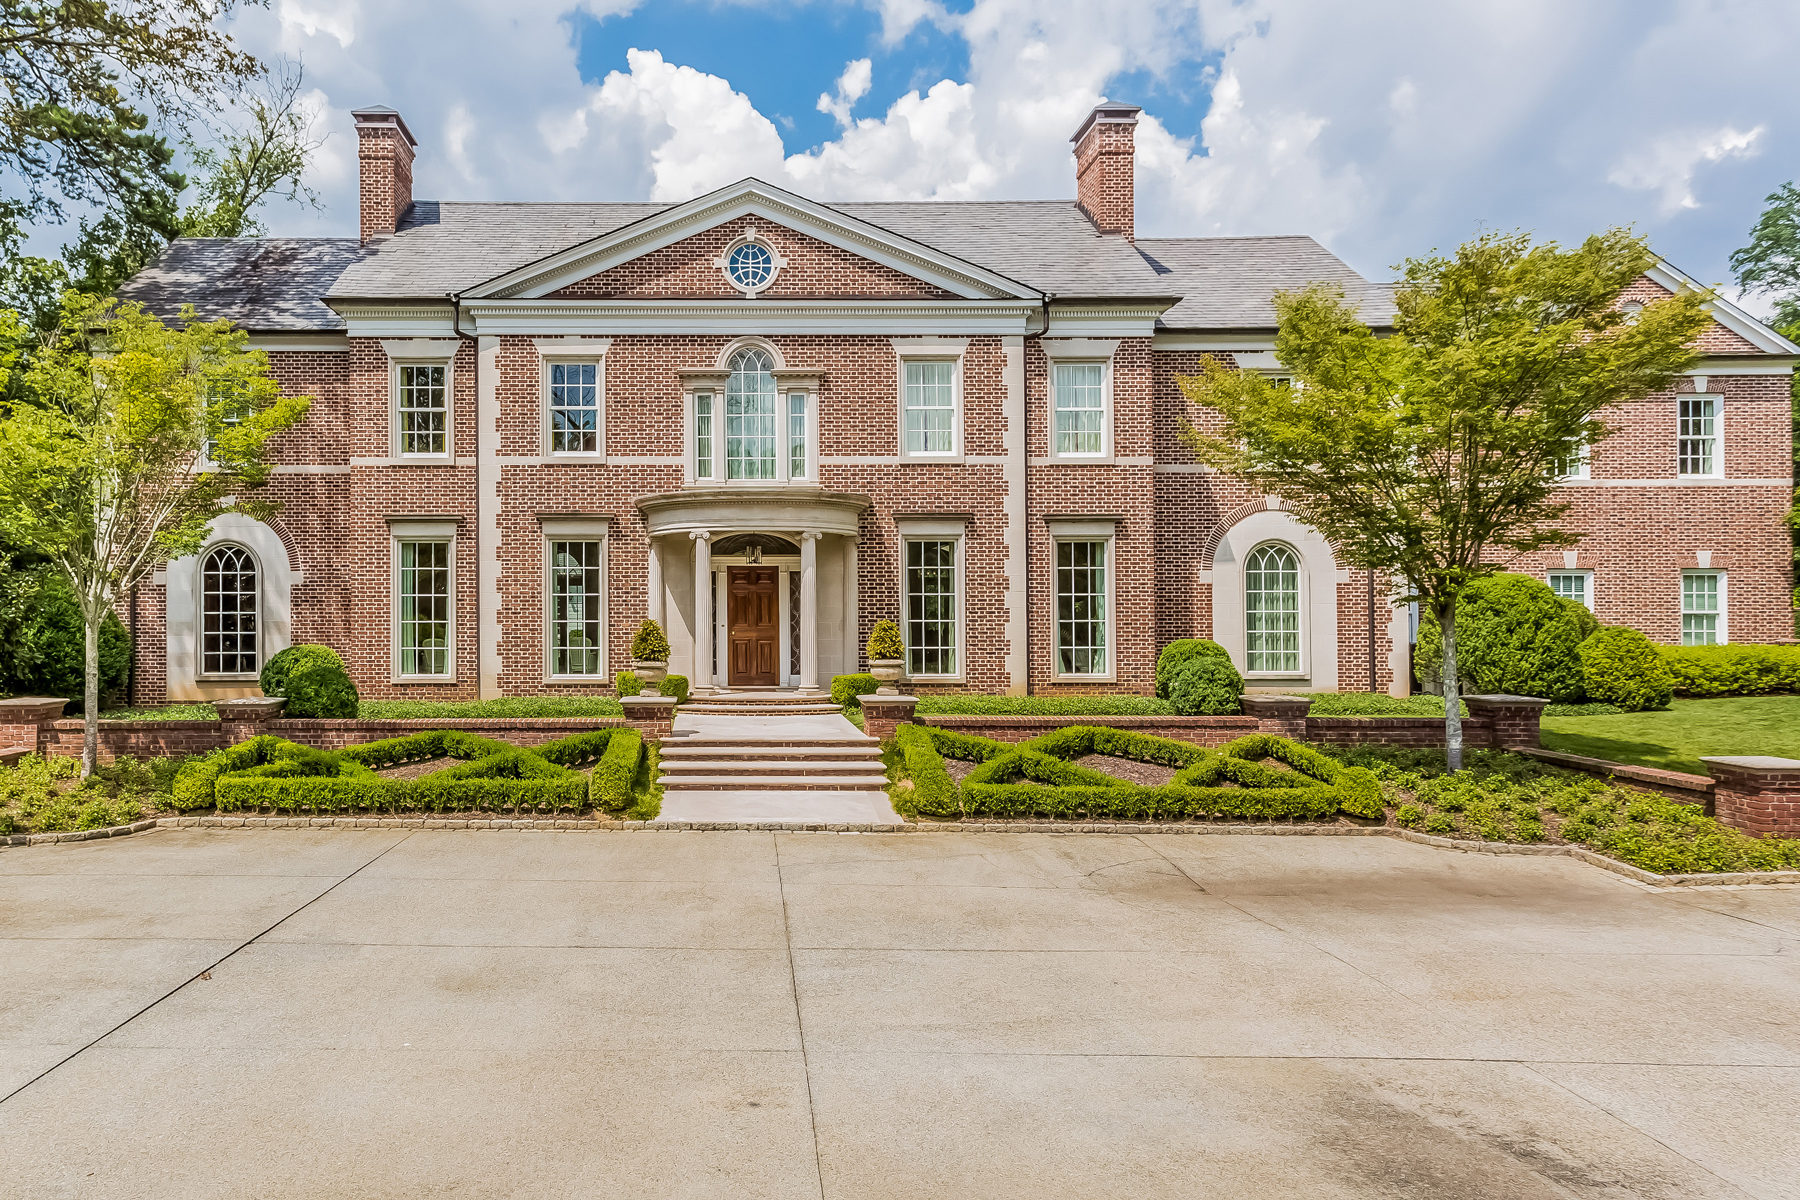 Single Family Home for Sale at Majestic Estate On 4 Pristine Acres 2750 Habersham Road Buckhead, Atlanta, Georgia 30305 United States